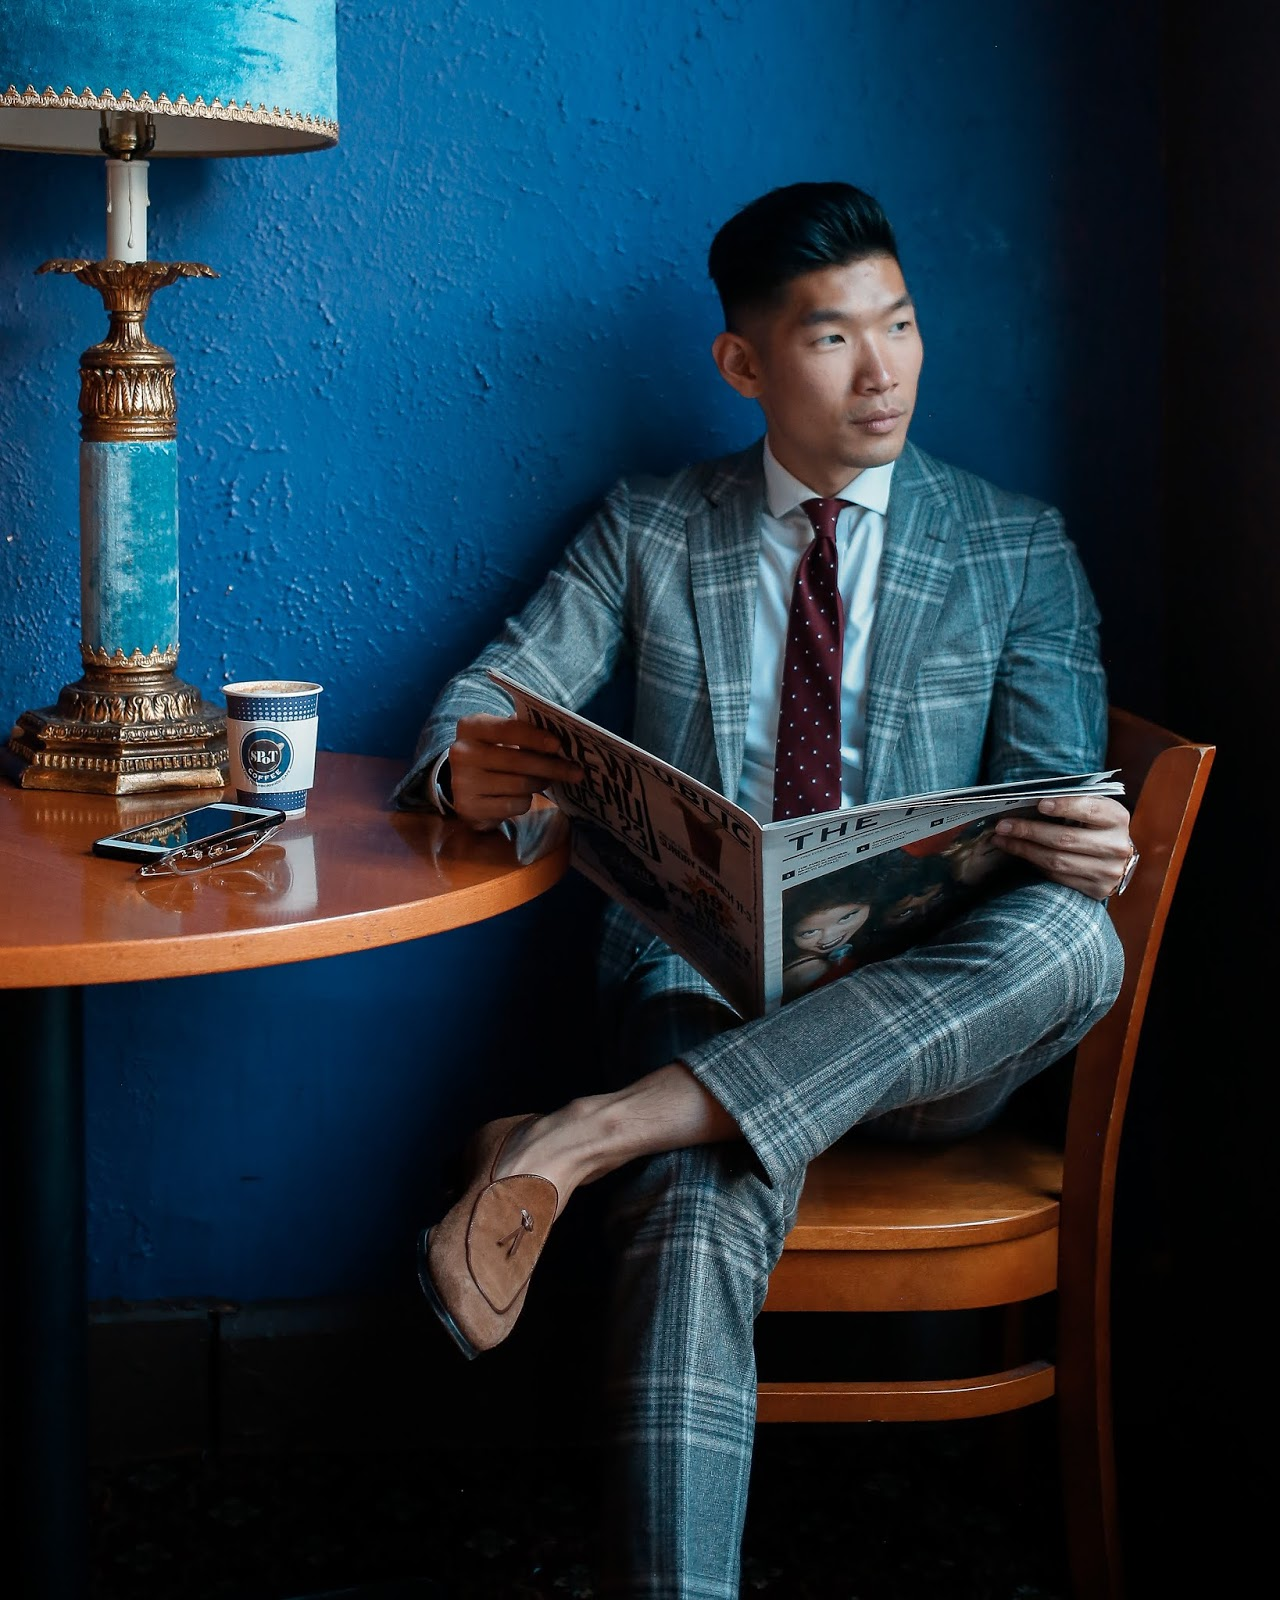 Leo Chan wearing Burgundy Tie for Fall Wedding Look | Asian Male Model and Blogger